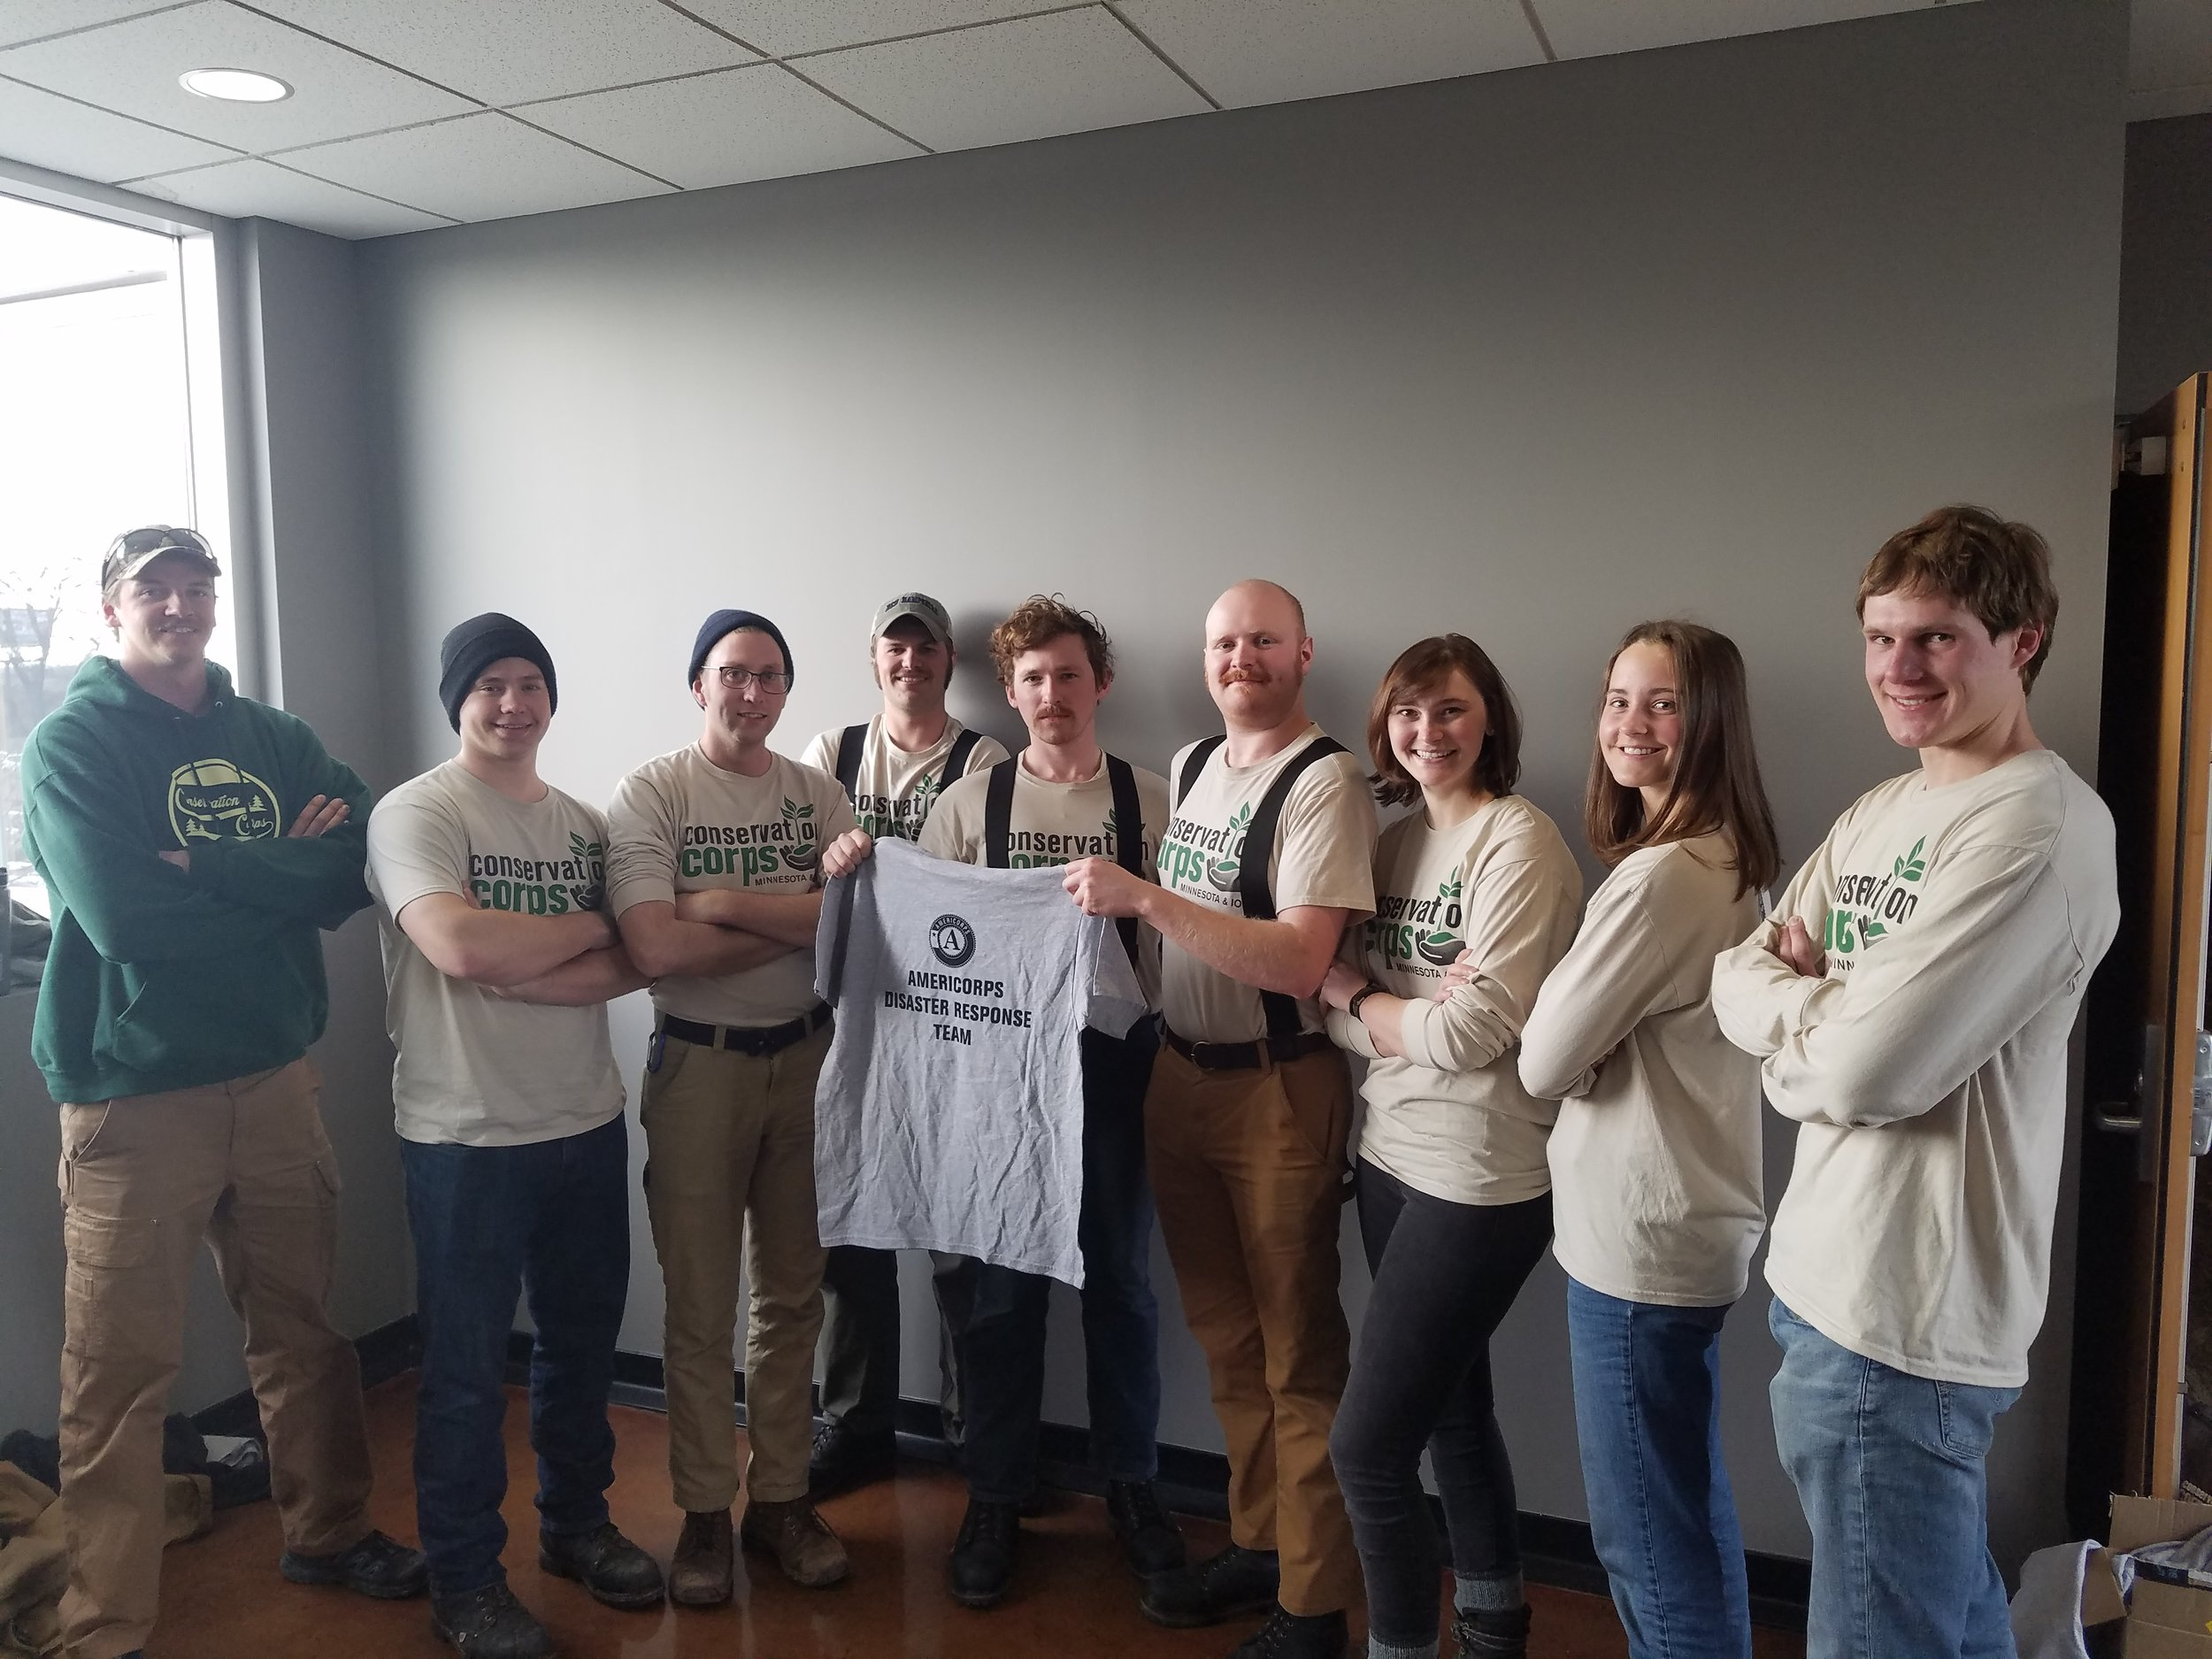 On Friday, April 12, 2019, AmeriCorps members departed from Saint Paul, Minnesota to join additional members in Iowa for a 30-day flooding disaster recovery deployment.